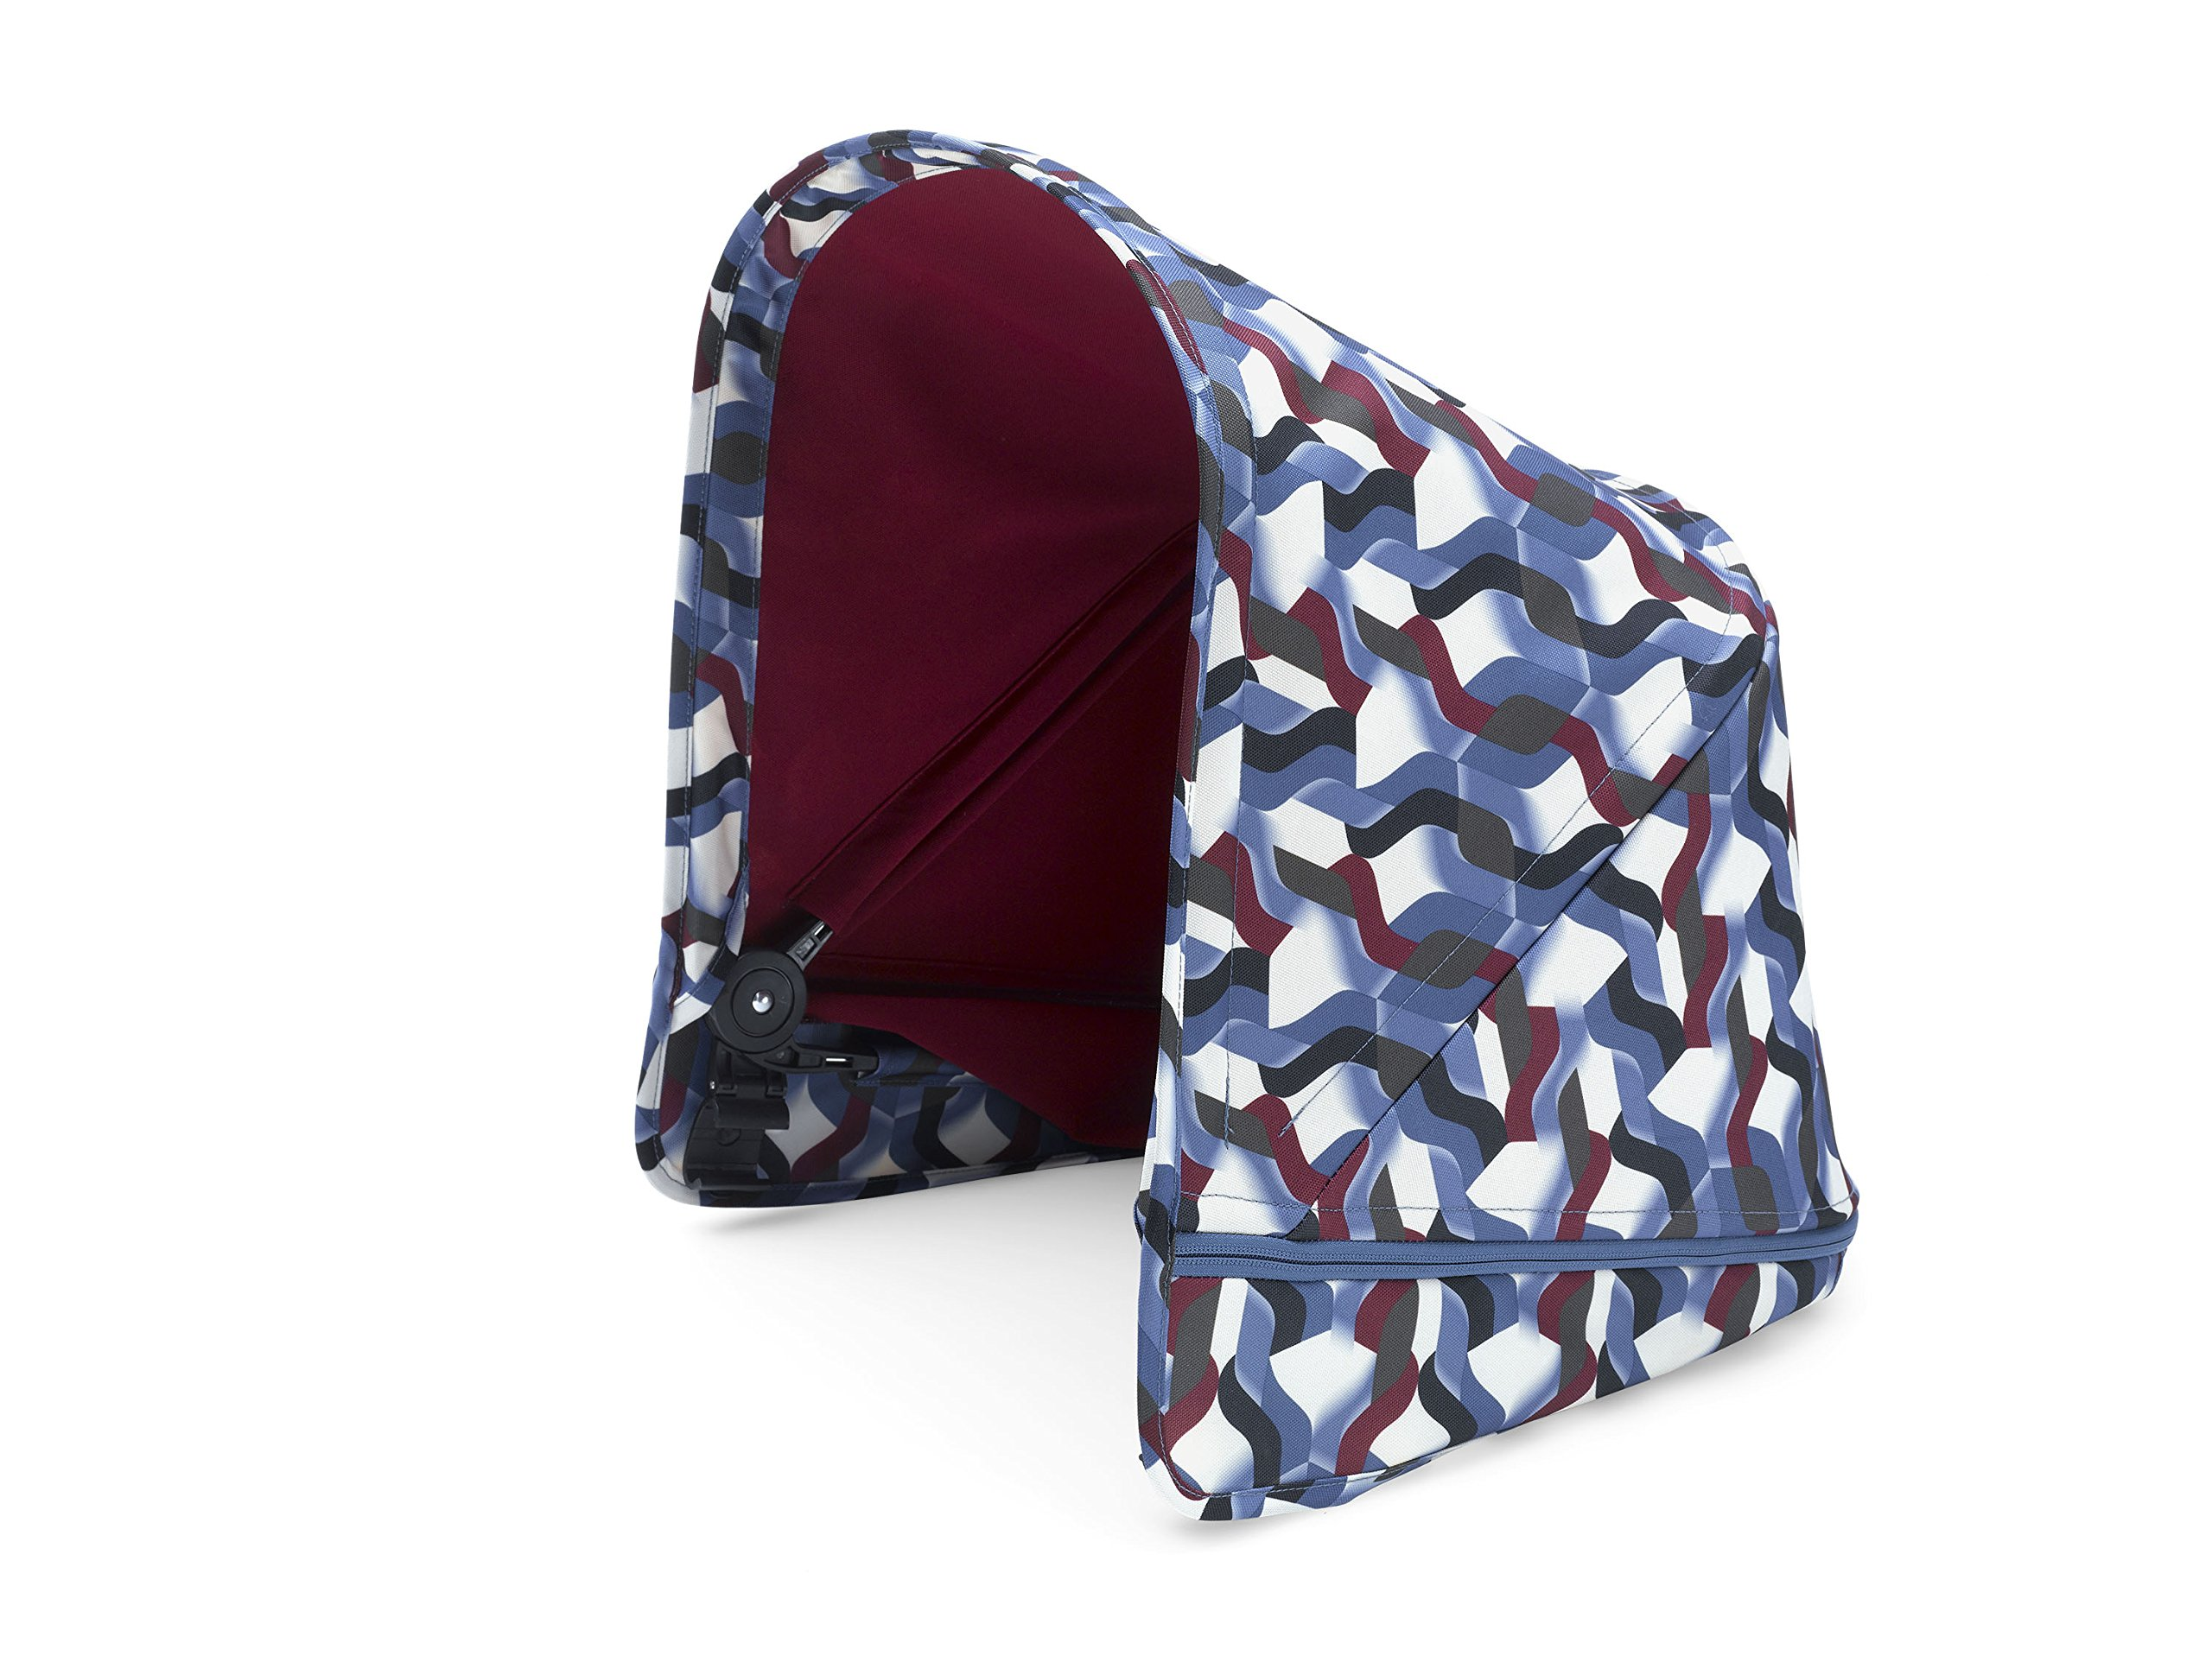 Bugaboo Donkey2 Sun Canopy, Waves - Extendable Sun Shade for Full Weather Protection, Machine Washable